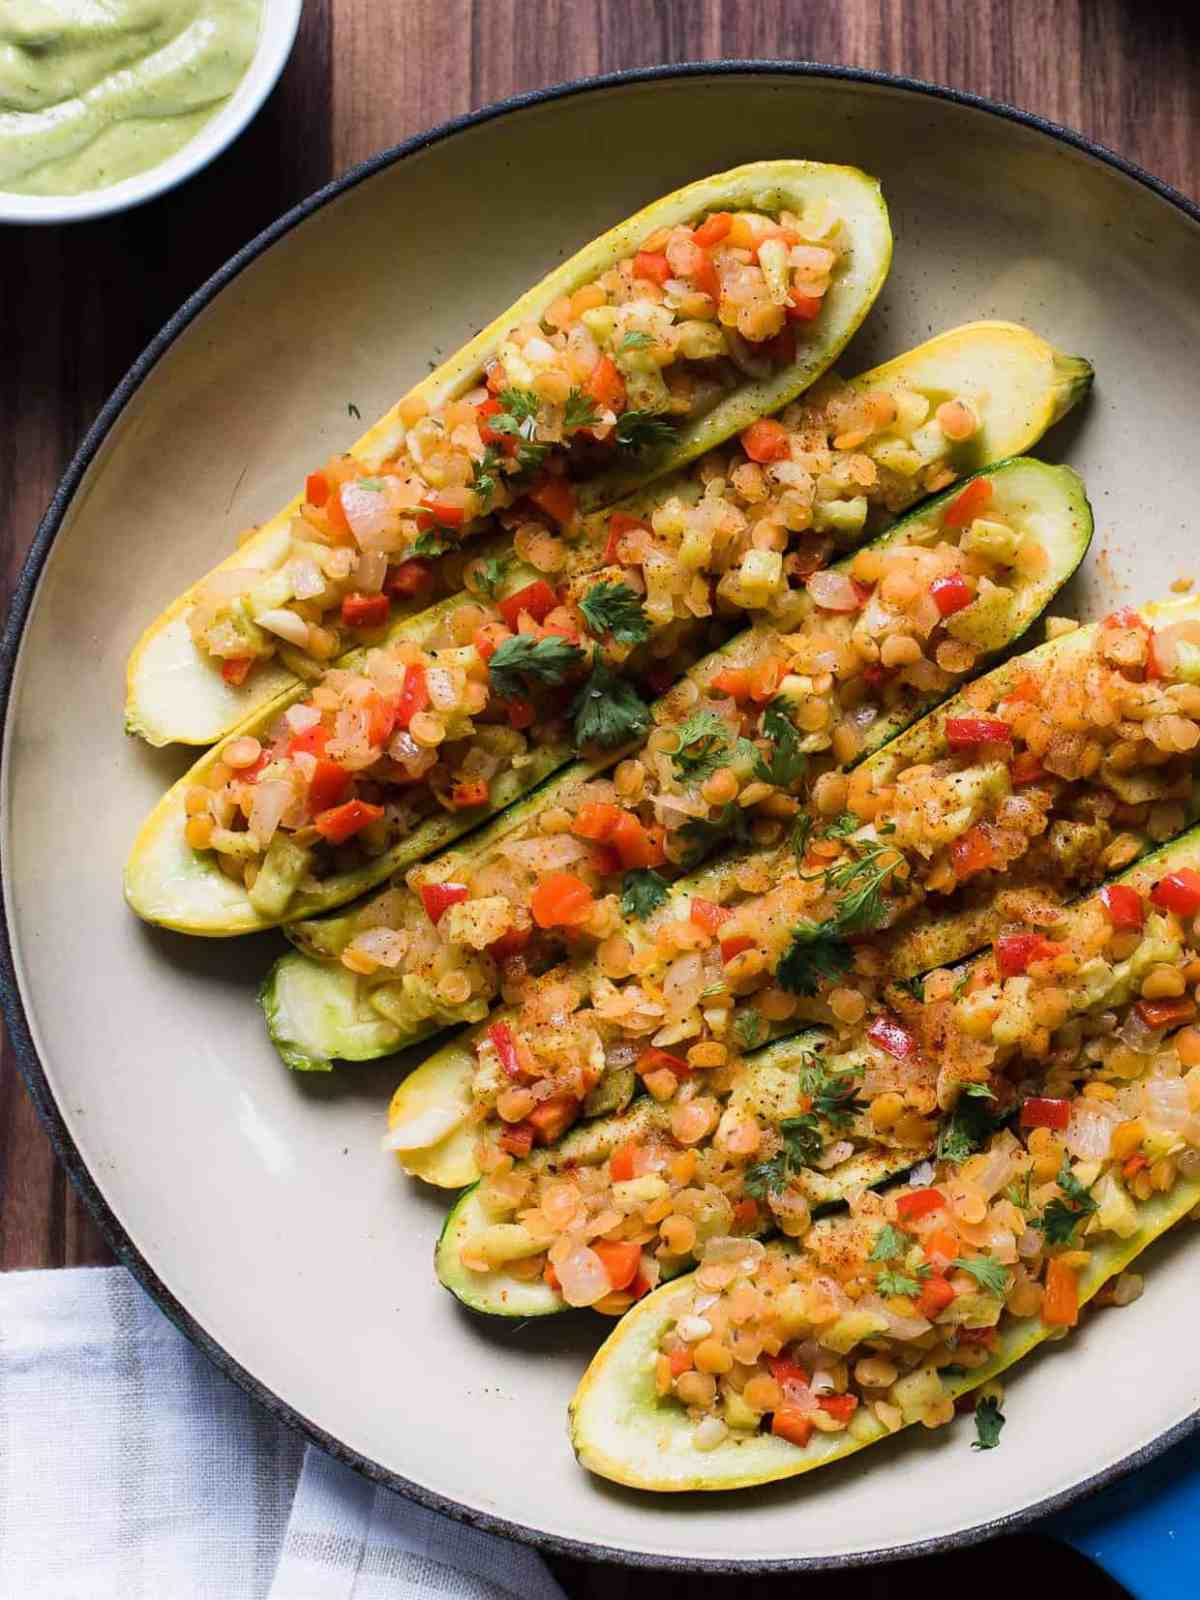 Stuffed yellow squash and zucchini with a tasty lentil filling in a shallow pan.